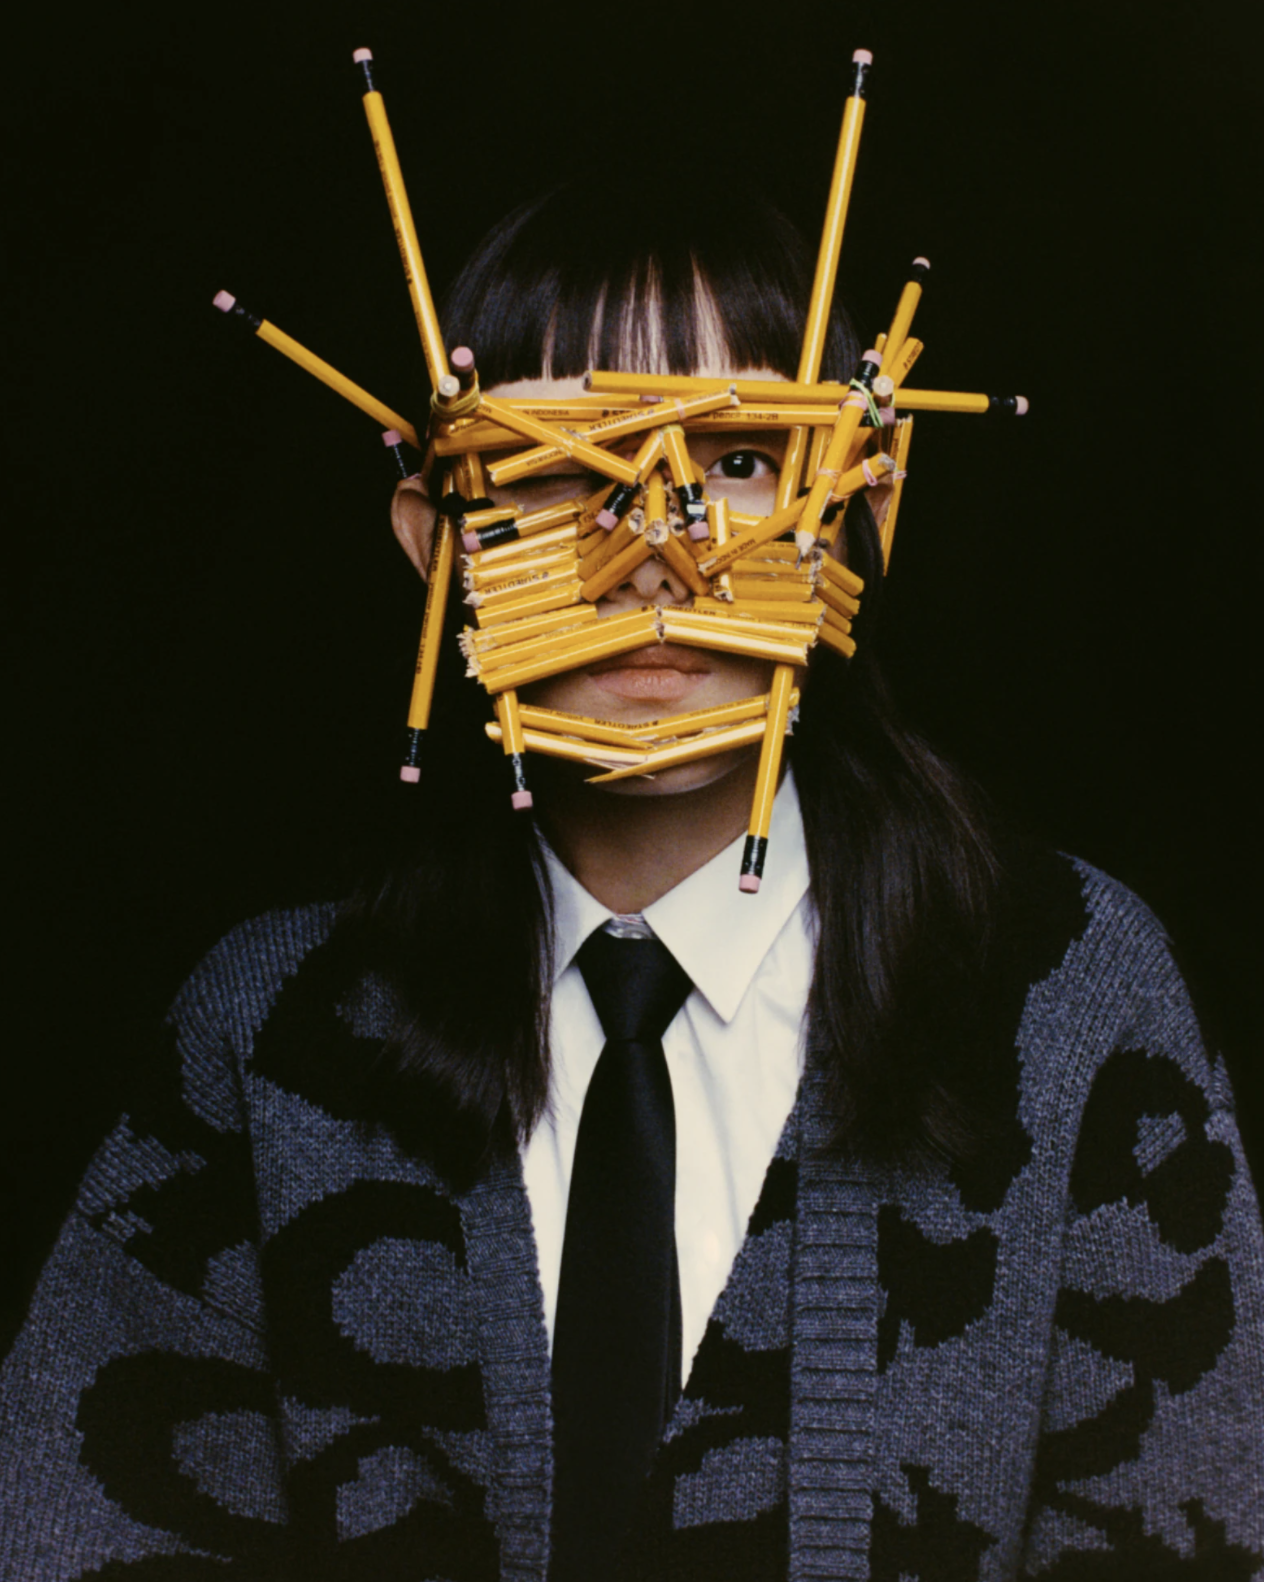 A person in a sweater looks at the camera, with their face covered by numerous pencils bundled together in several directions